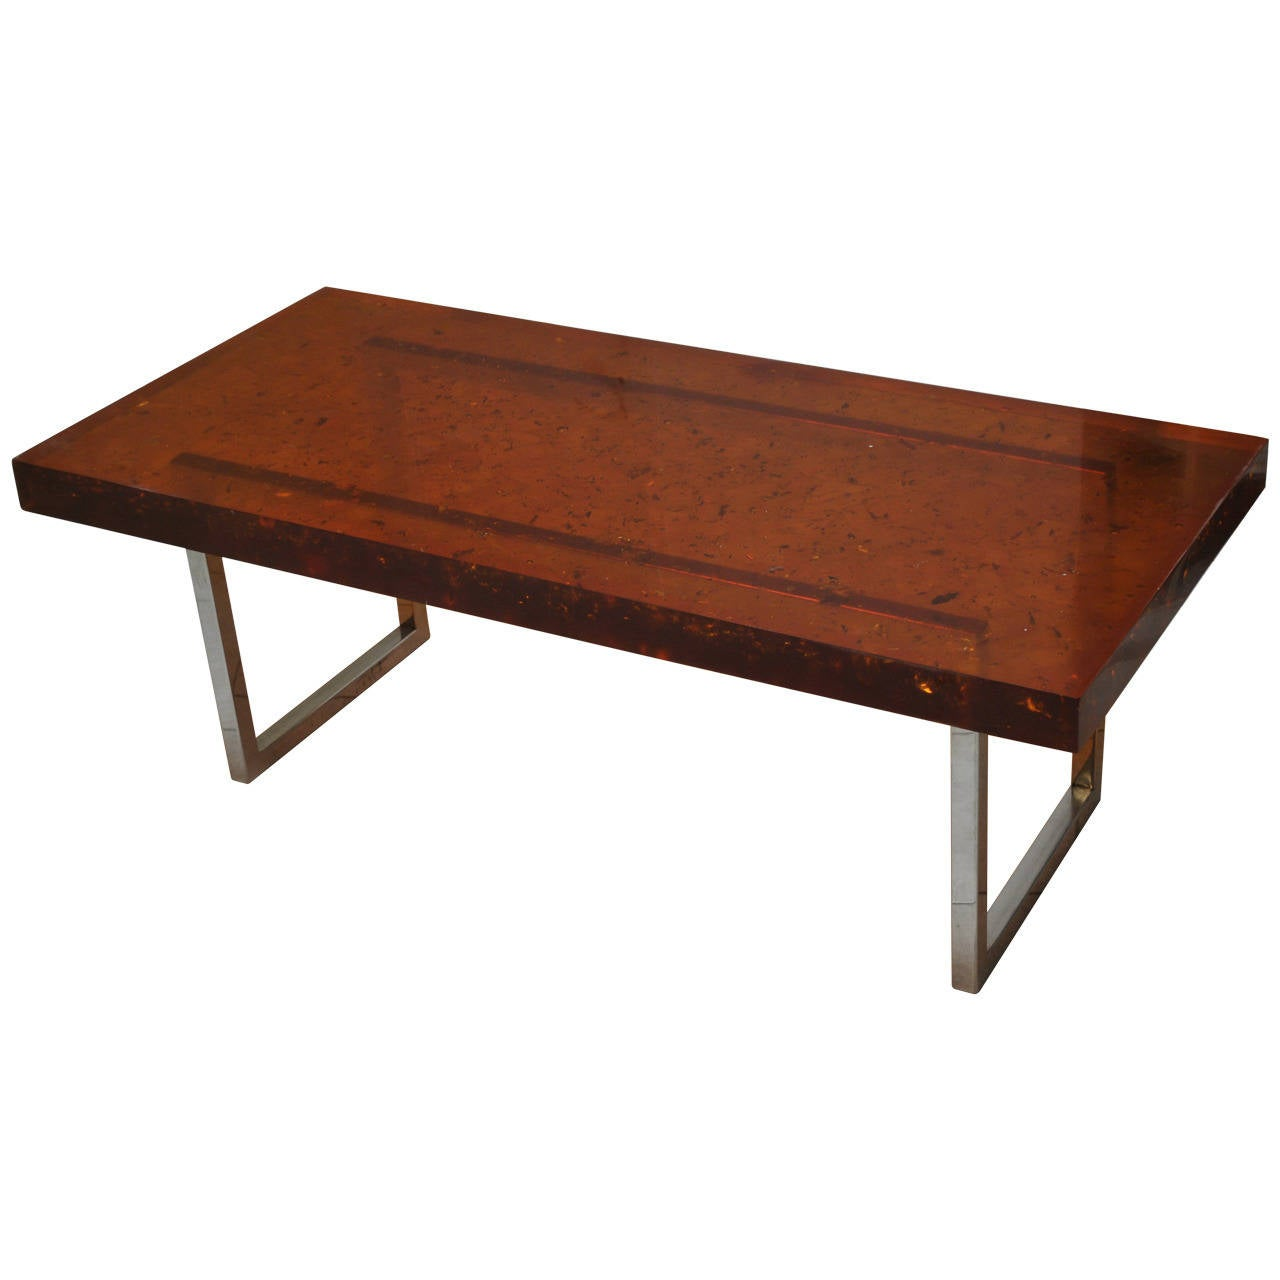 Modernist Fractal Resin Coffee Table The Henri Fernandez Private Collection For Sale At 1stdibs